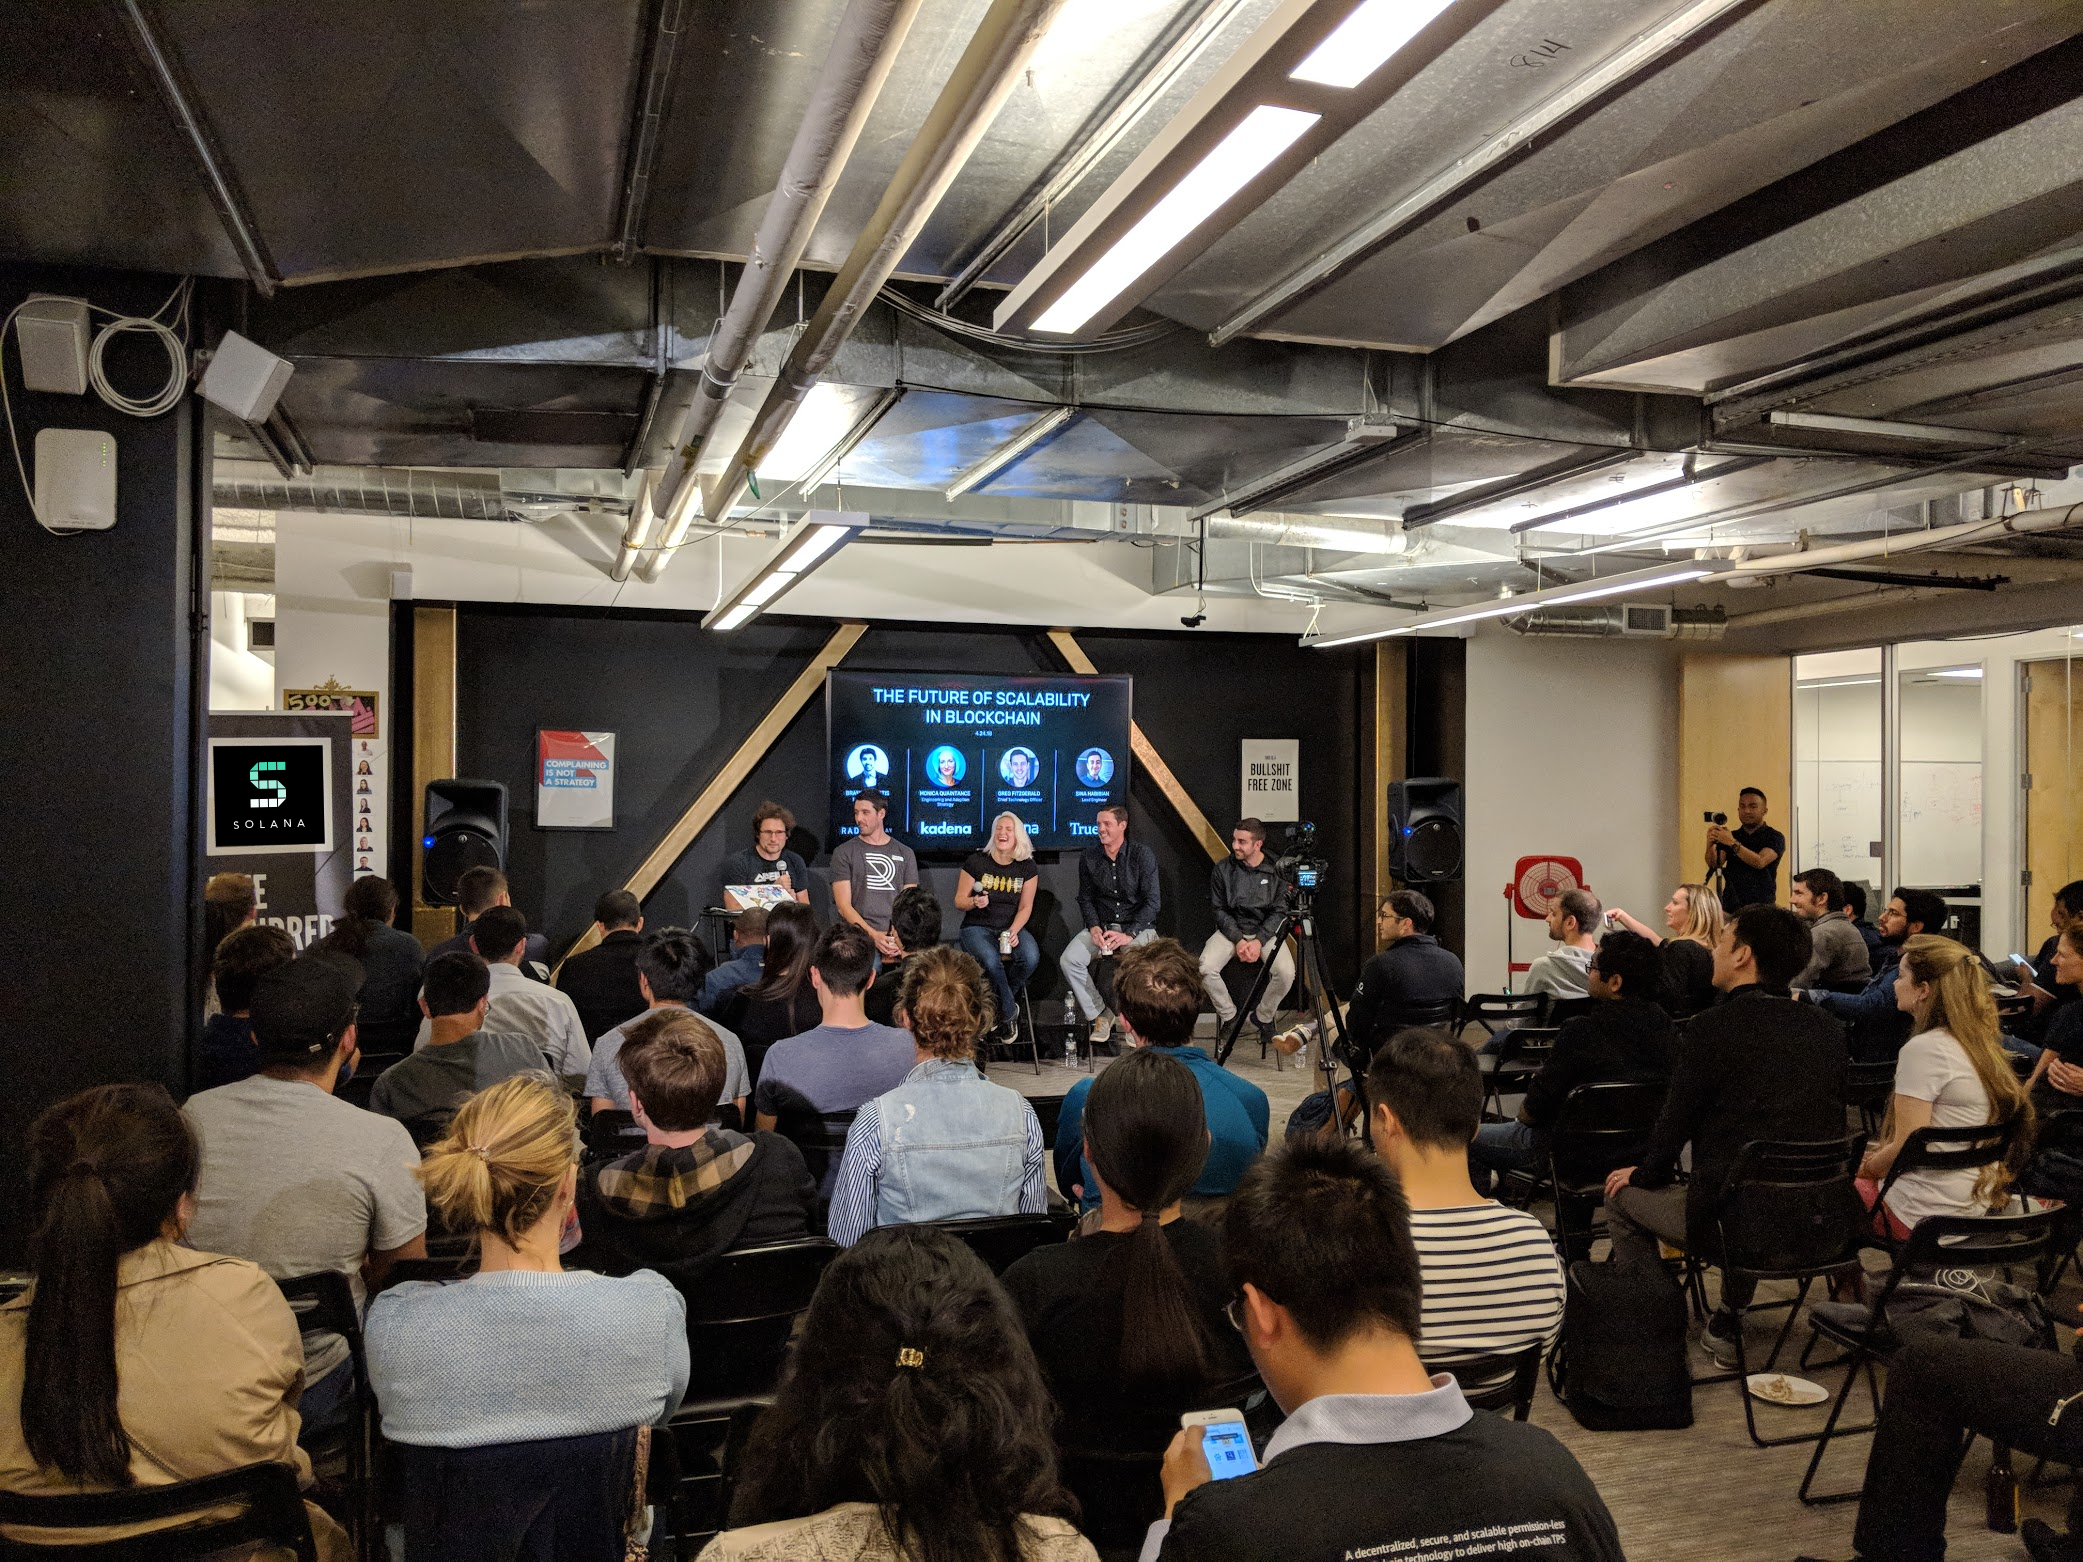 We had 150+ folks with panelists from Dfinity, RadarRelay, Kadena, Solana, and TrueBit.